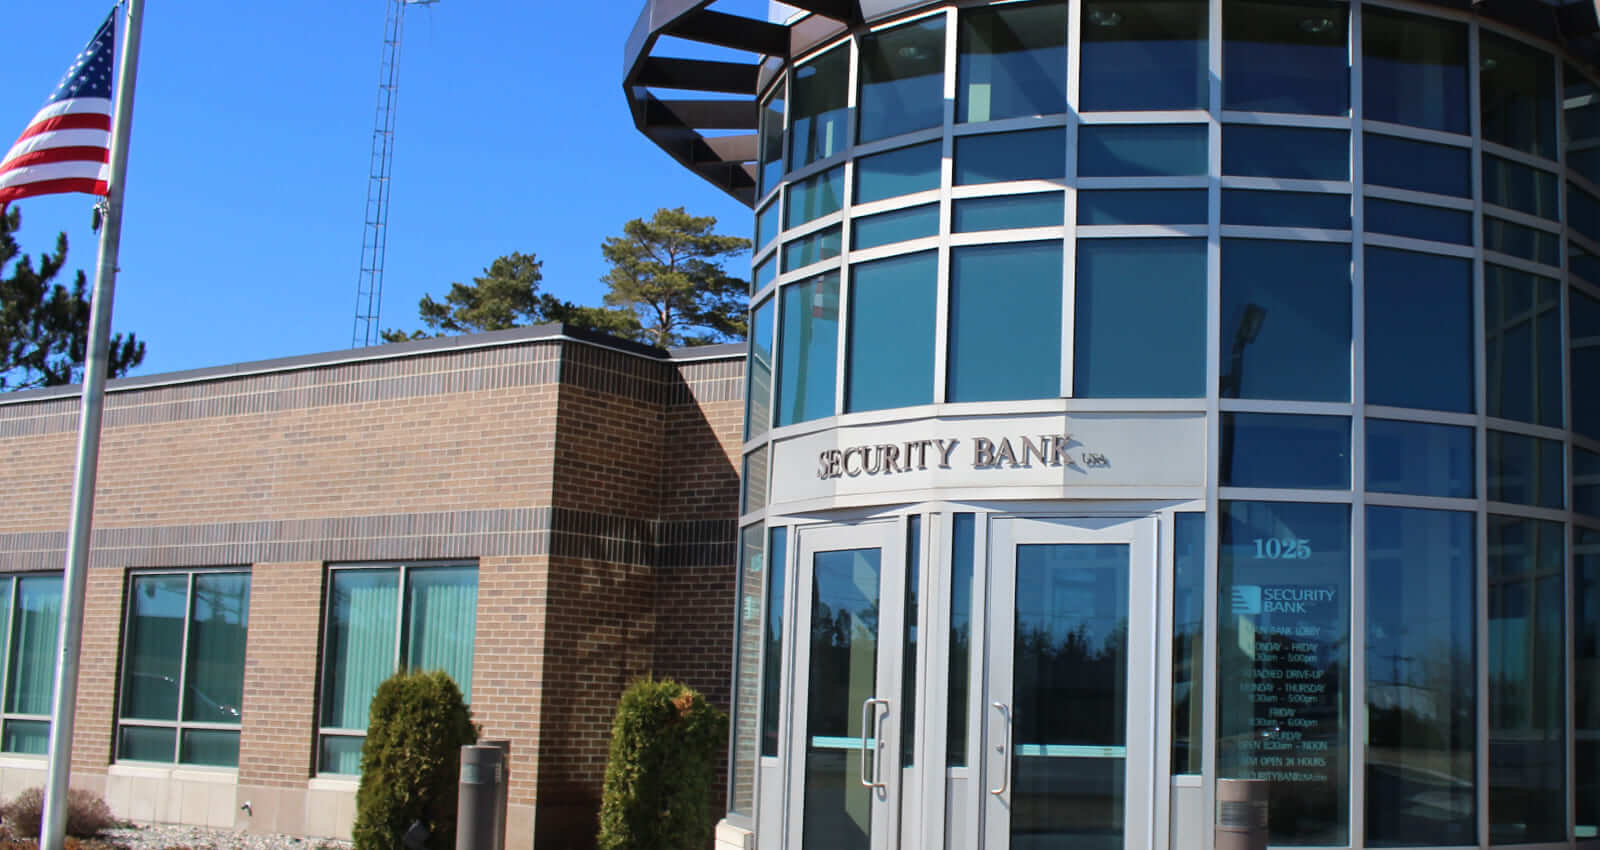 exterior of security bank building